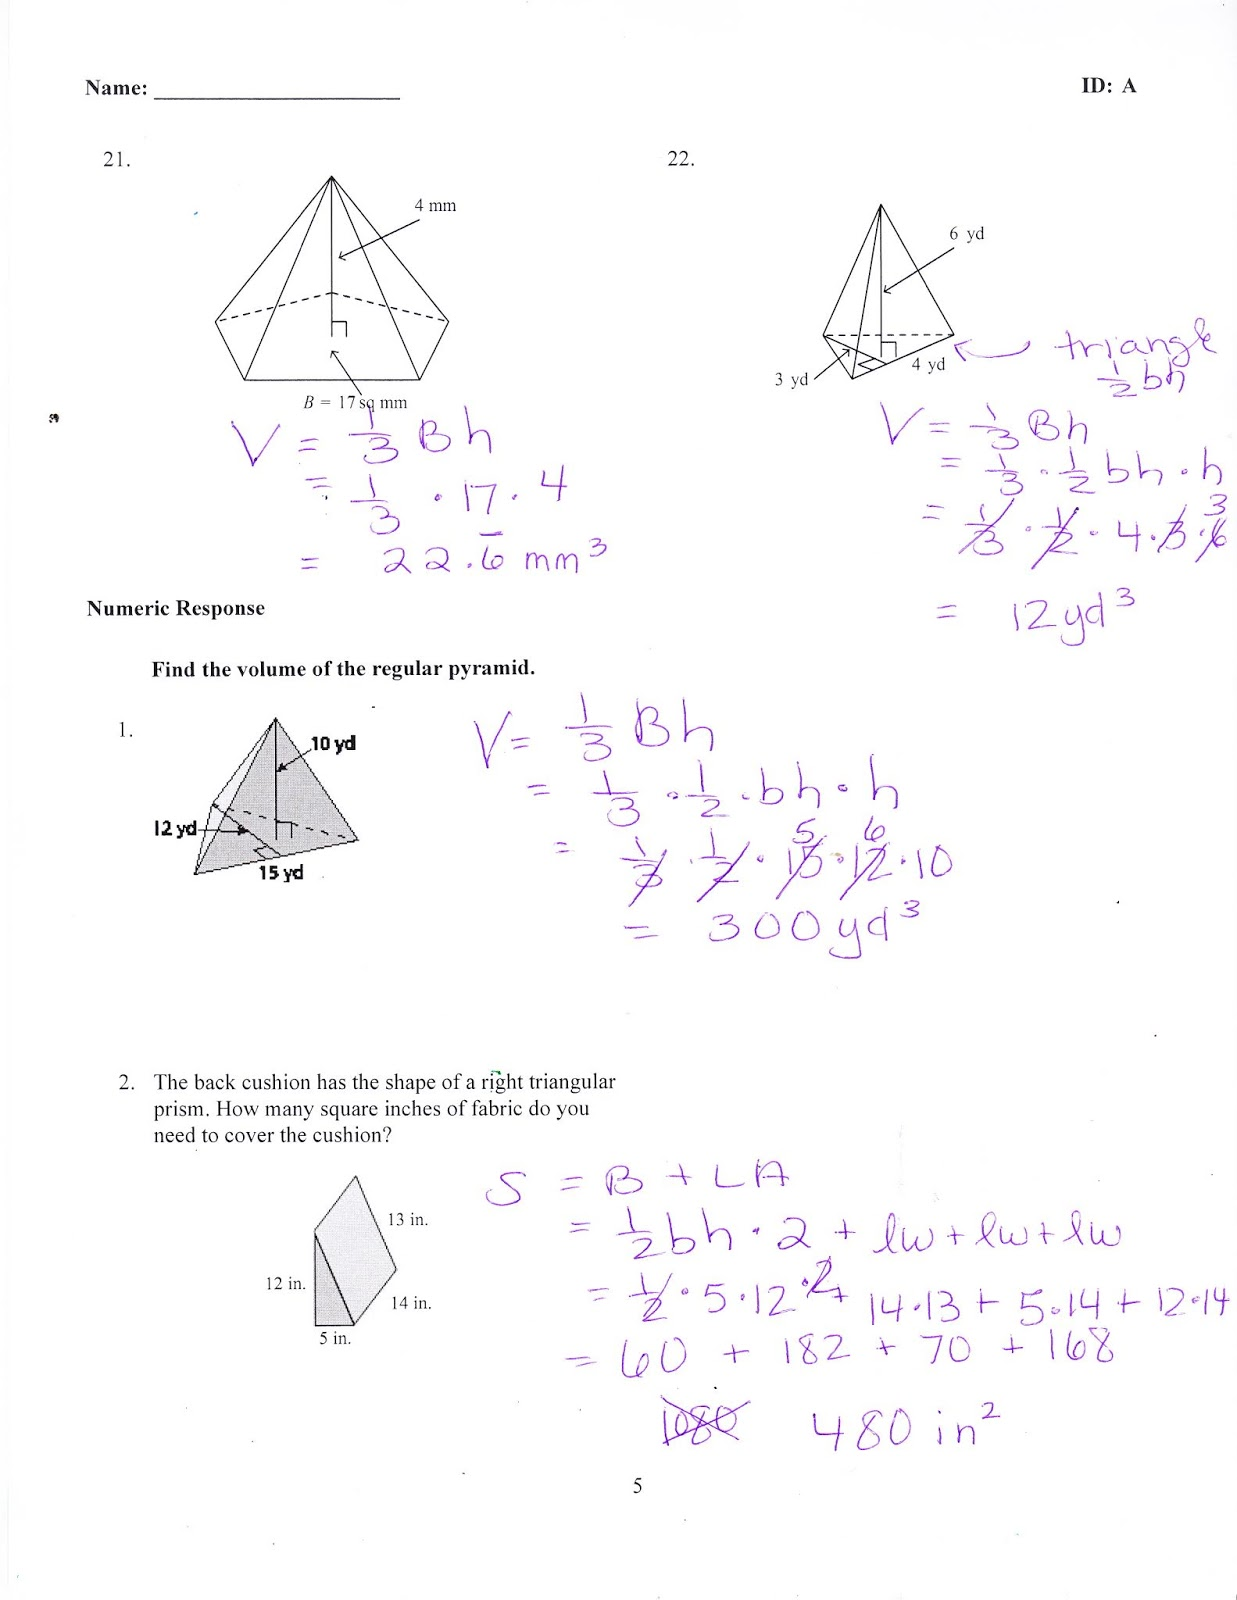 Ms. Jean's Classroom Blog: Chapter 9 Practice Test Answers